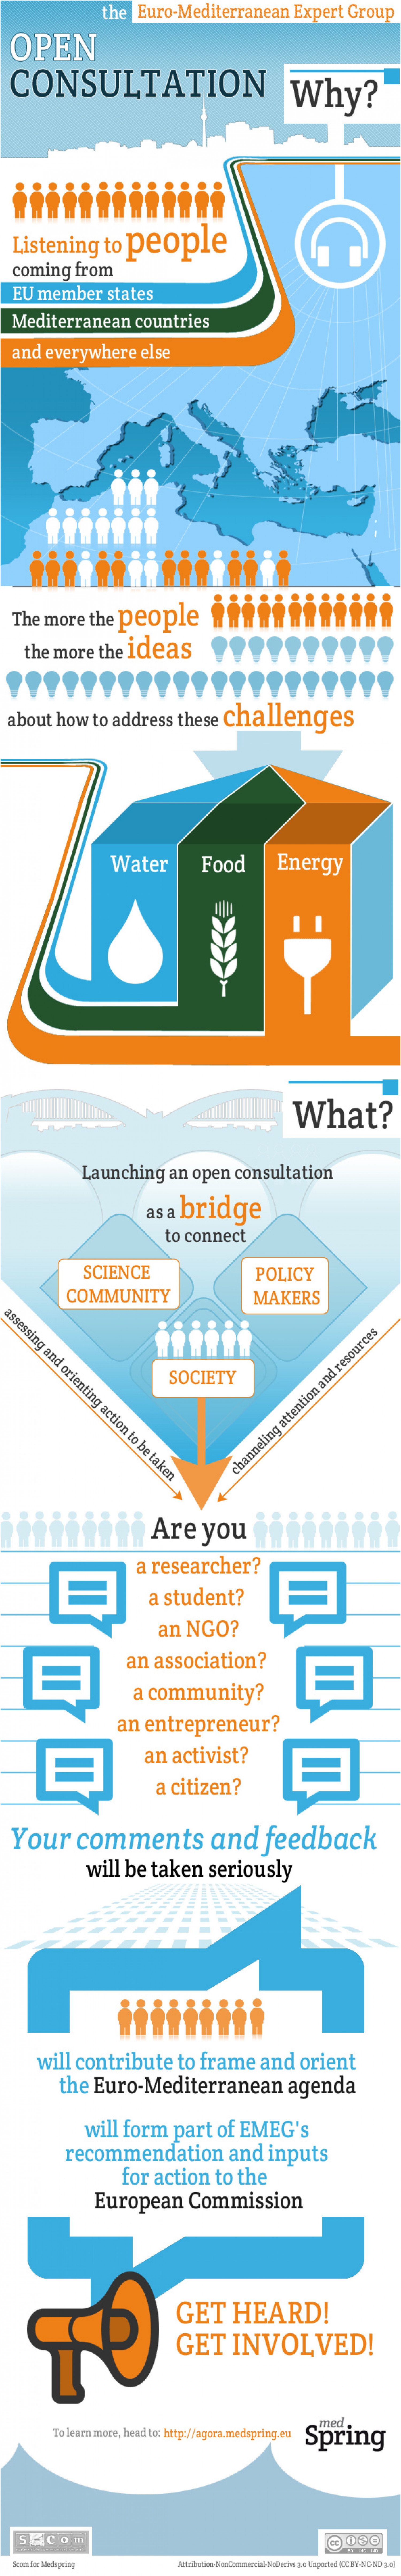 EMEG Open Consultation Infographic